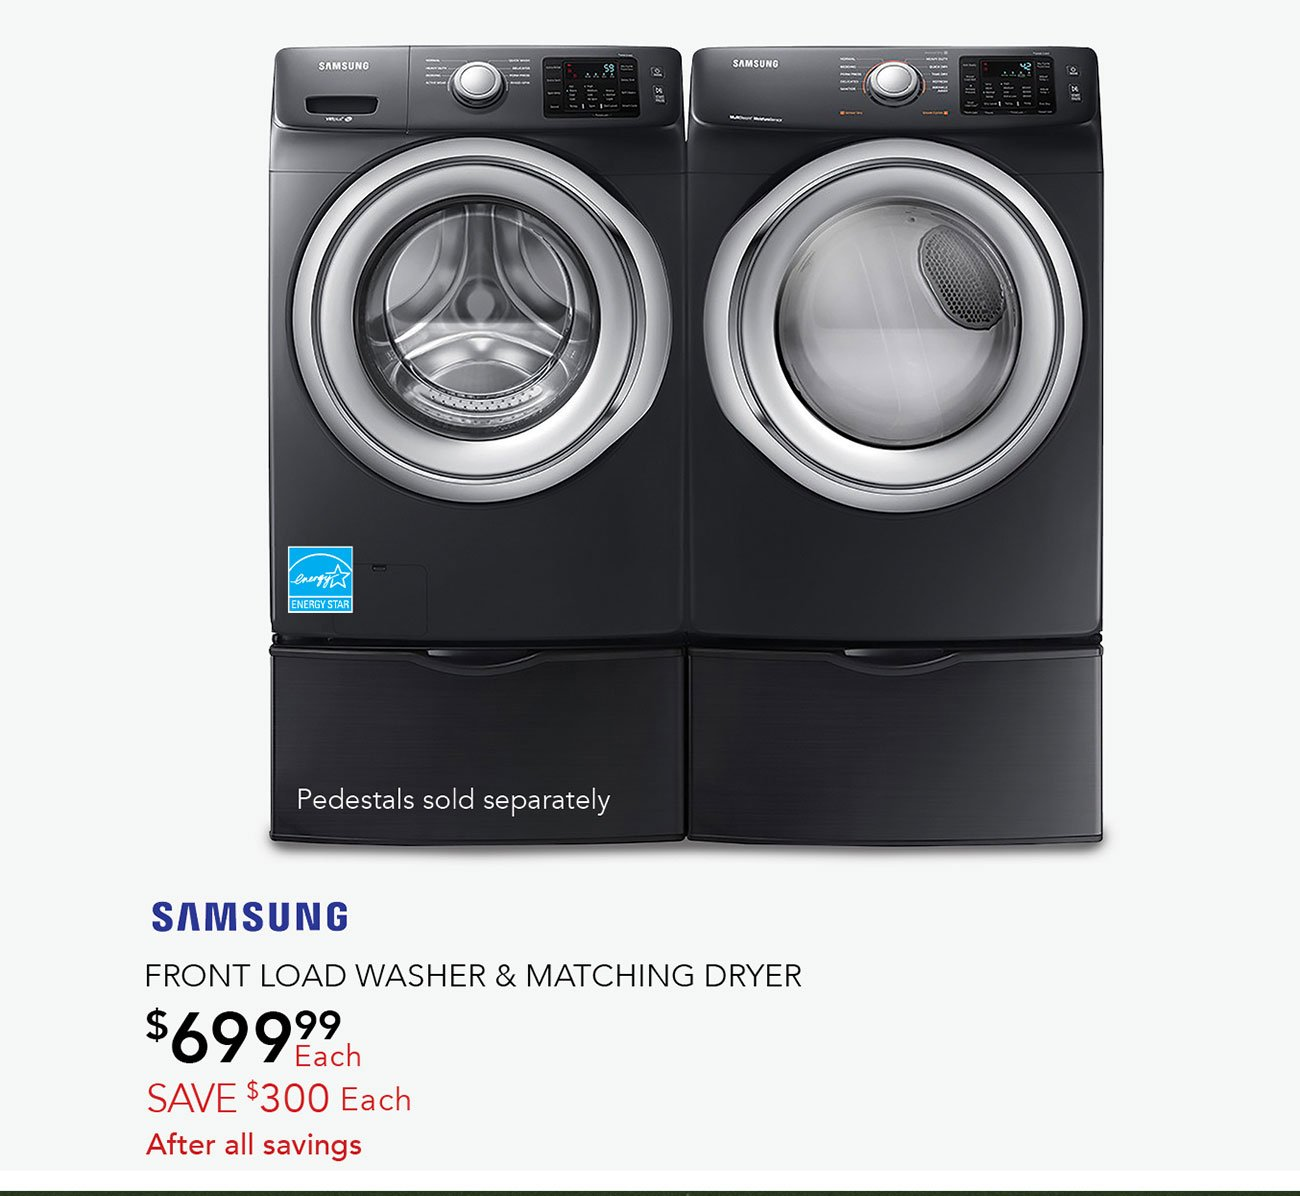 Samsung-front-load-washer-and-matching-dryer